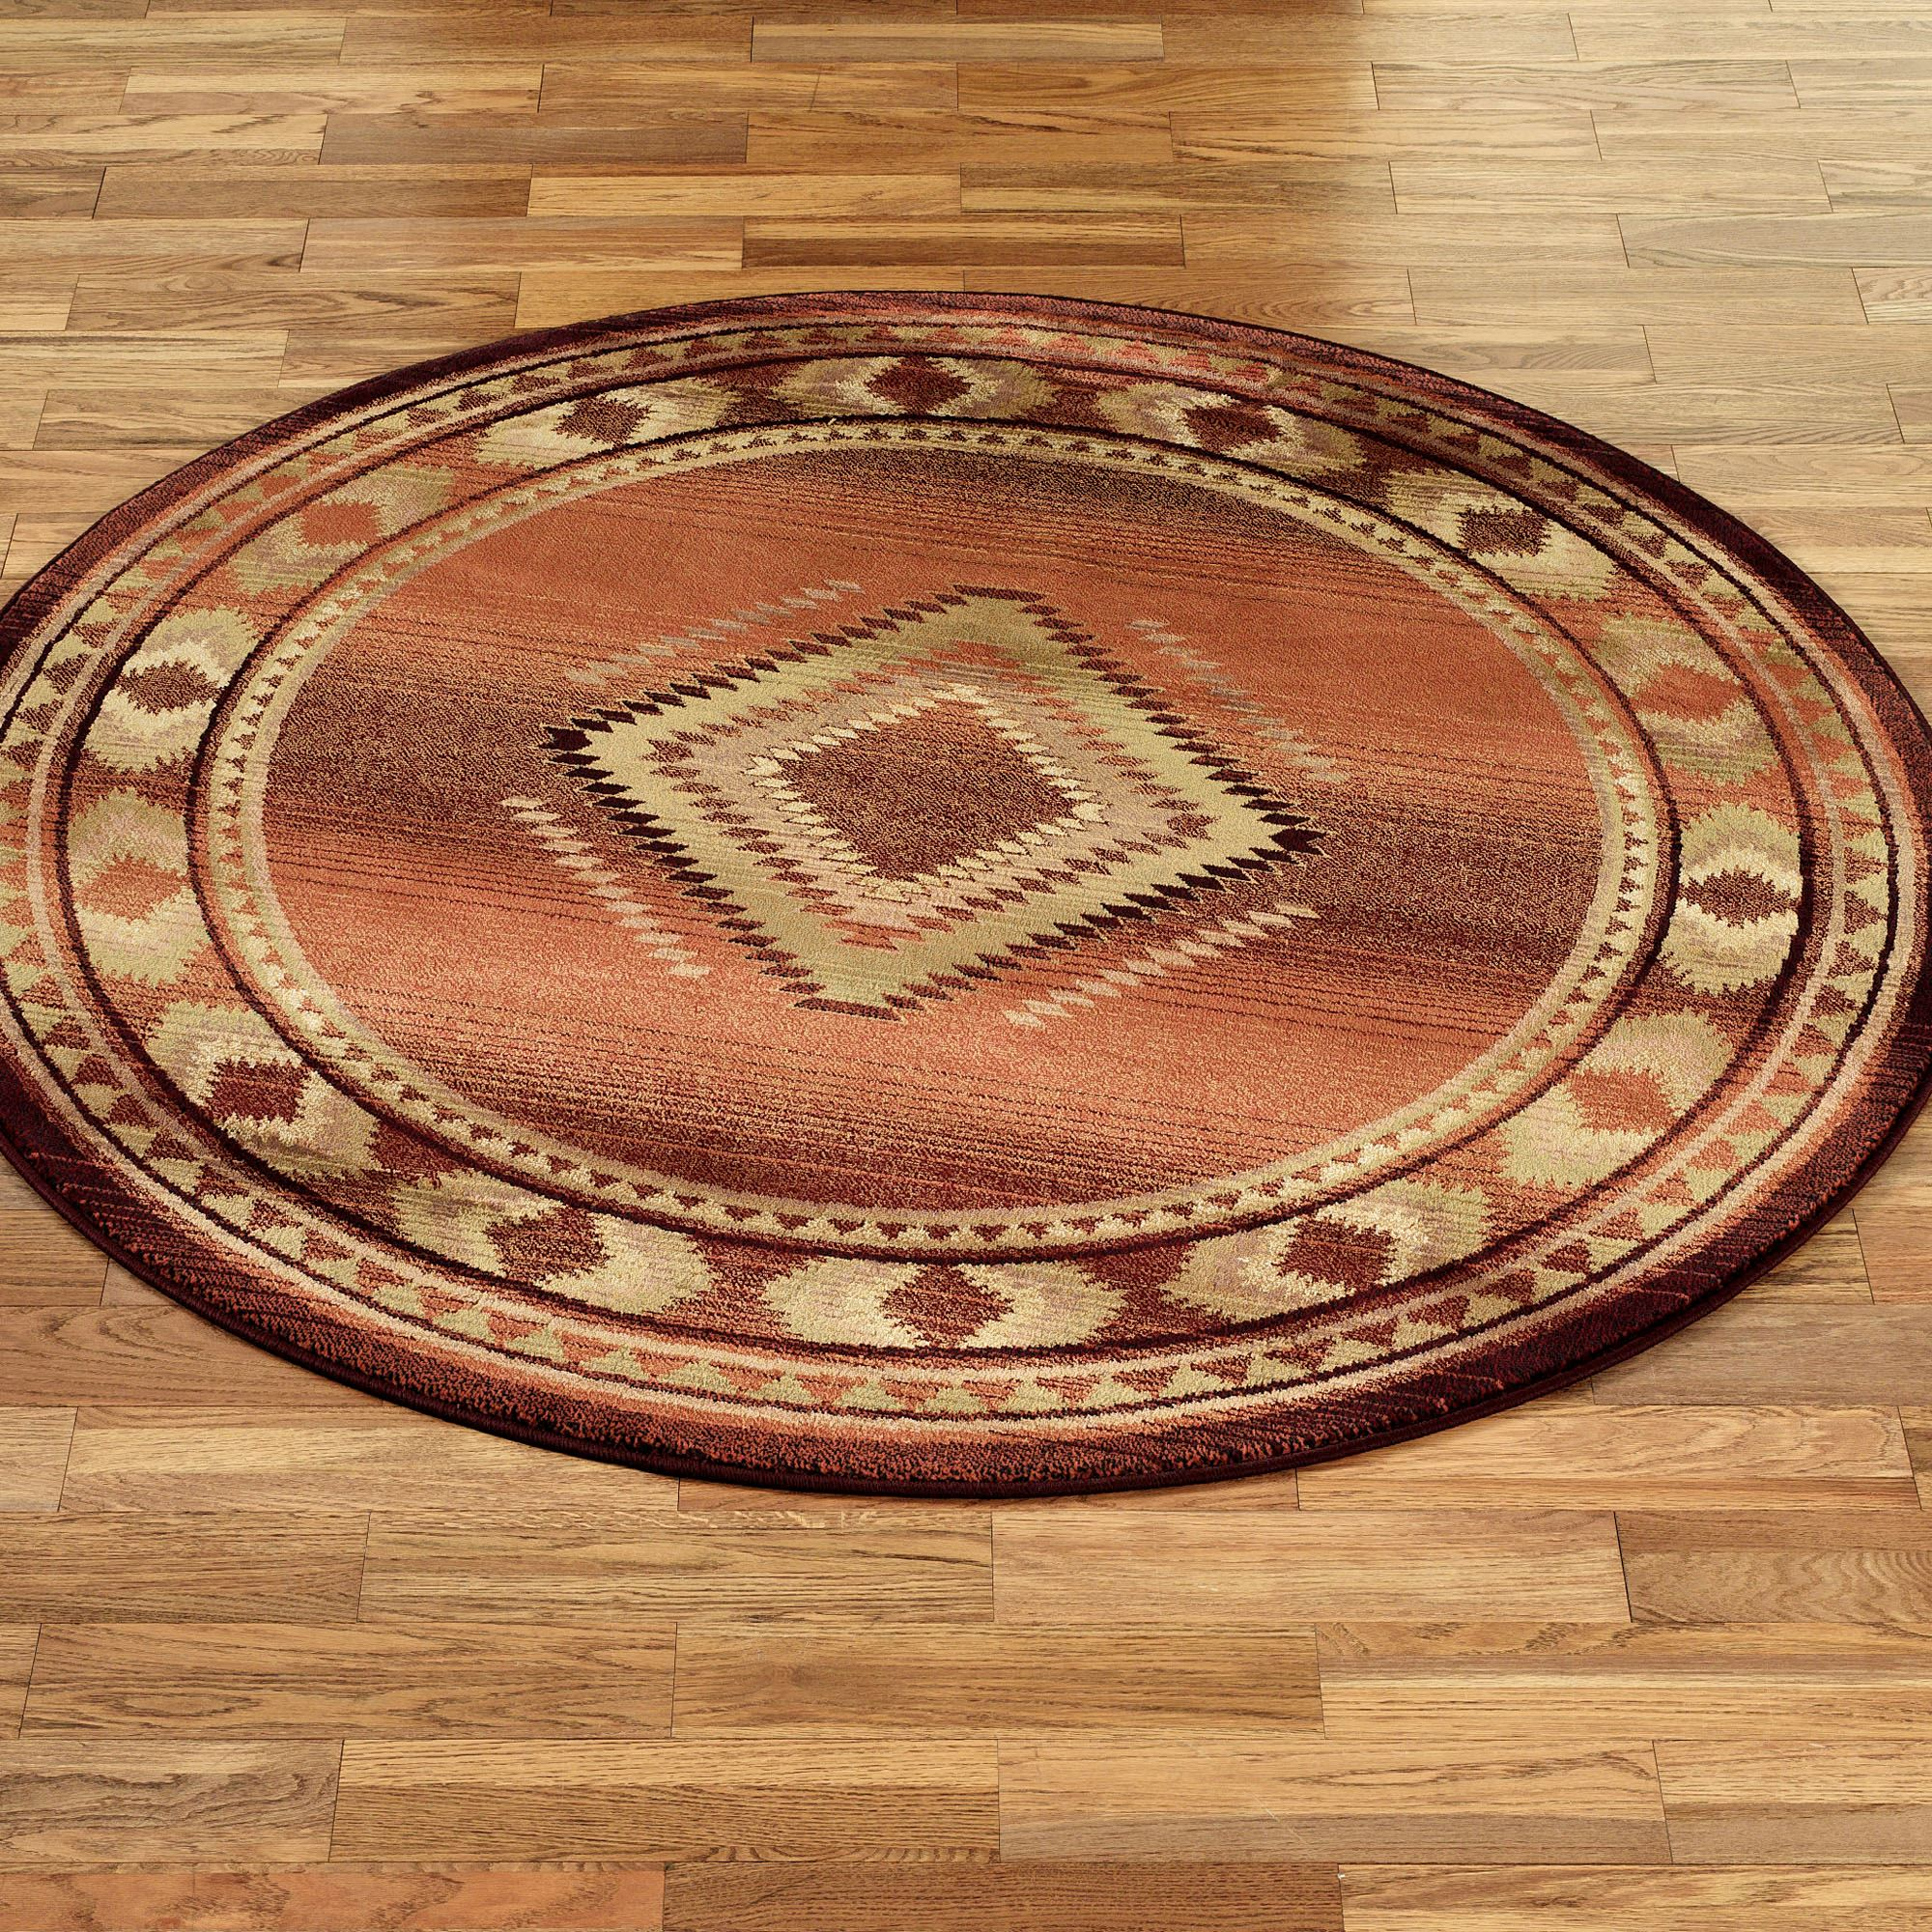 How To Use Round Area Rugs Area Rug Ideas